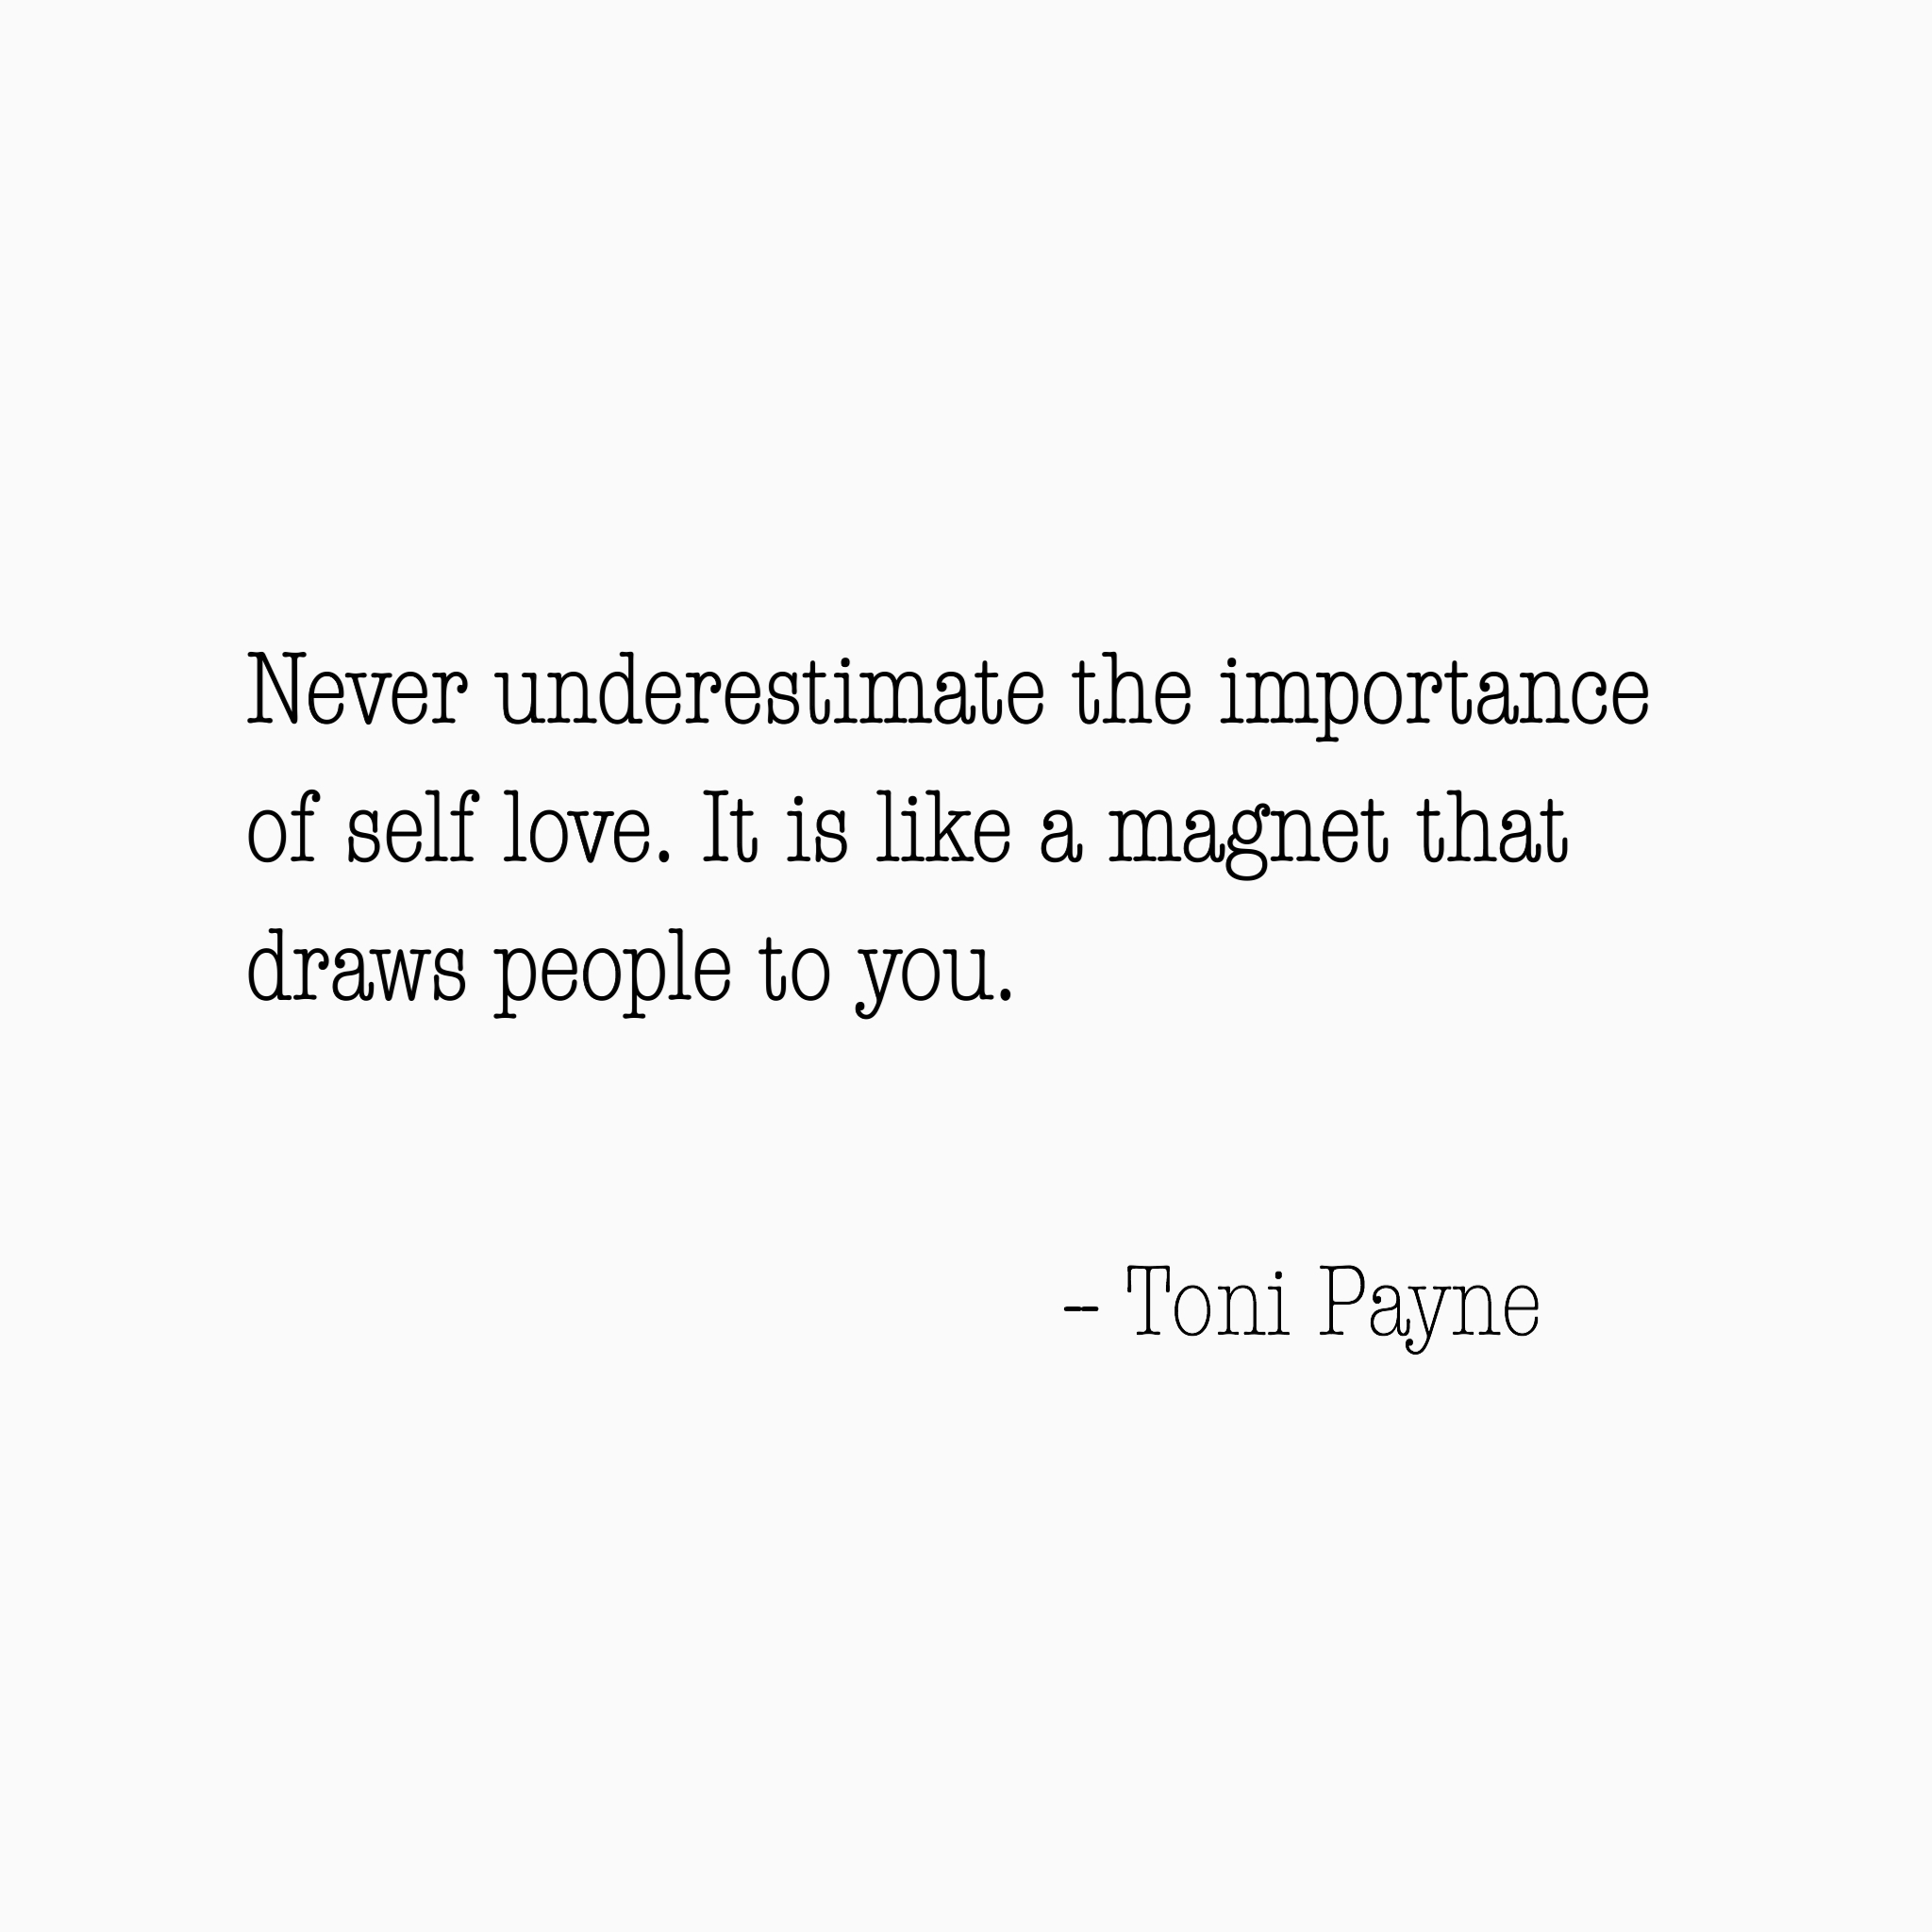 Quotes About Self Love Quote About Self Love  Toni Payne  Official Website